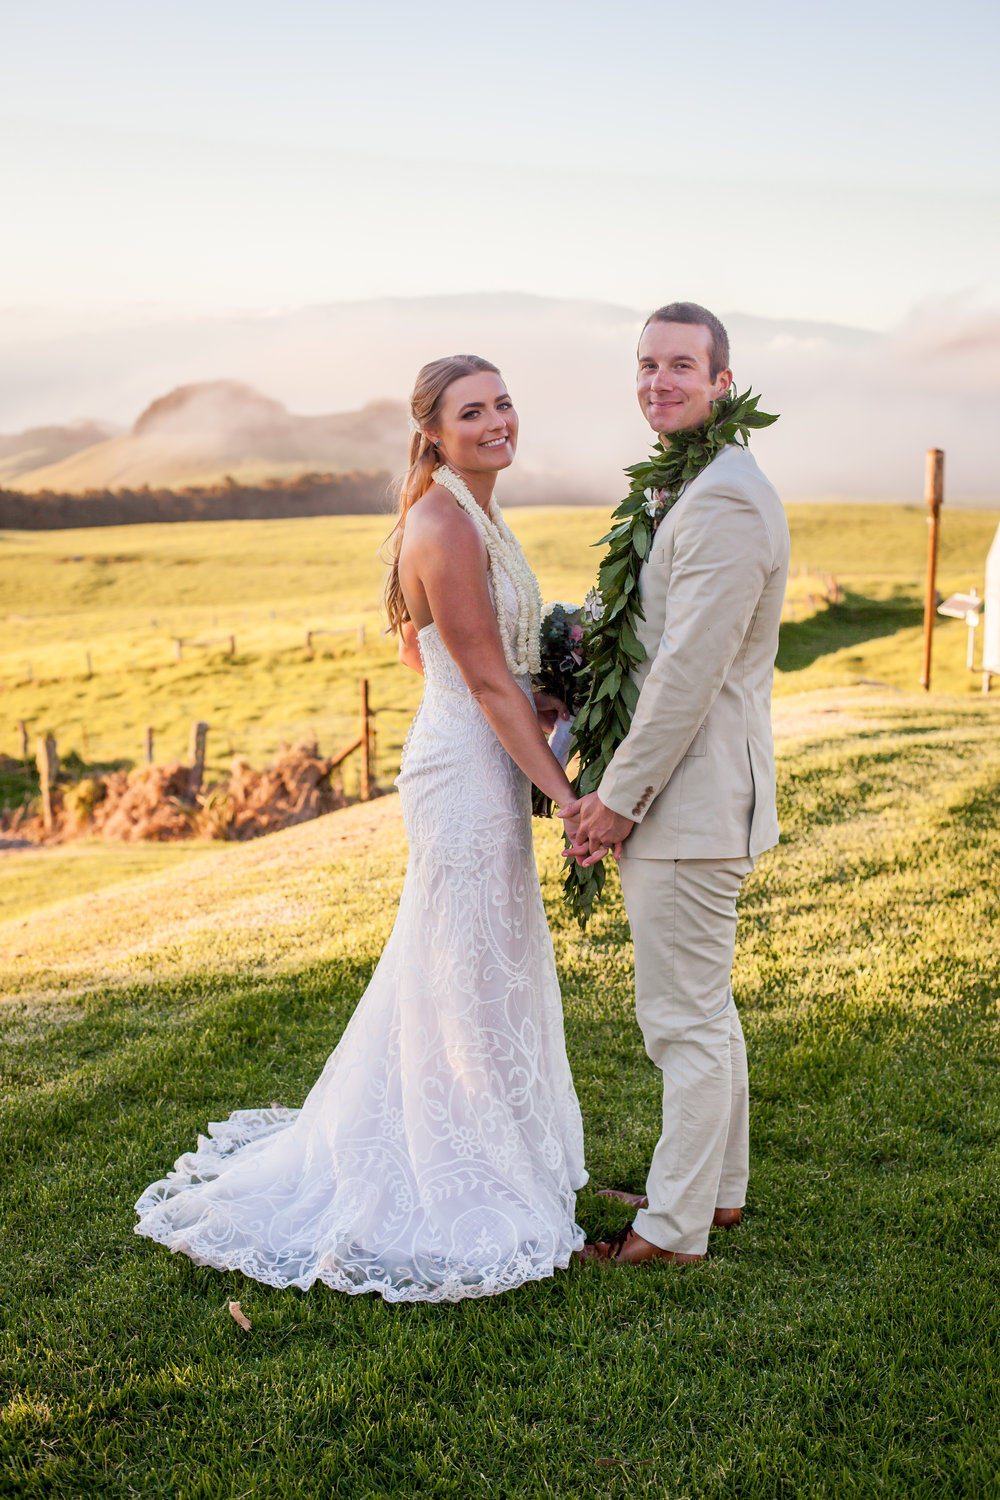 big island hawaii kahua ranch wedding © kelilina photography 20170106174539.jpg